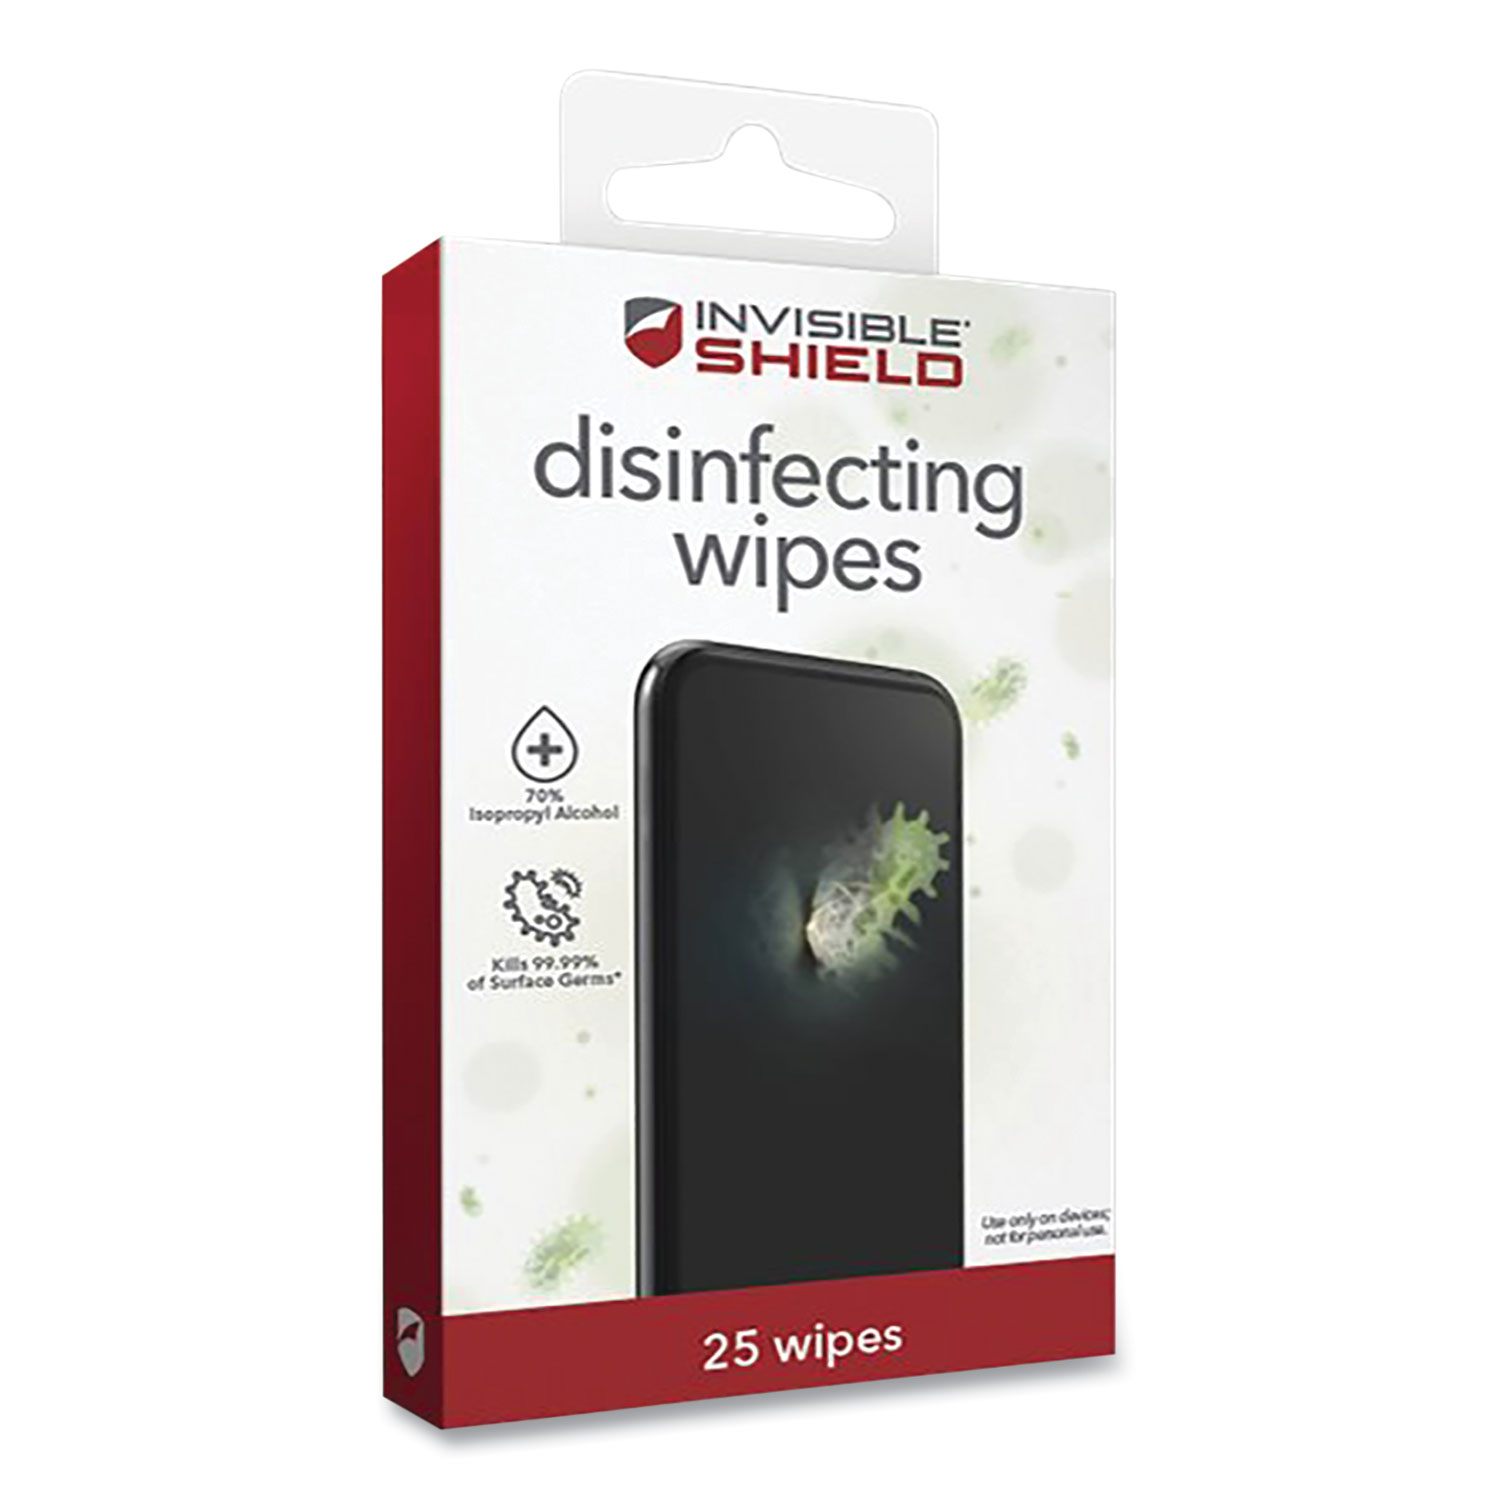 ZAGG® InvisibleShield Disinfecting Wipes for Electronic Devices, Spun Fiber, 3 x 3, 25/Pack